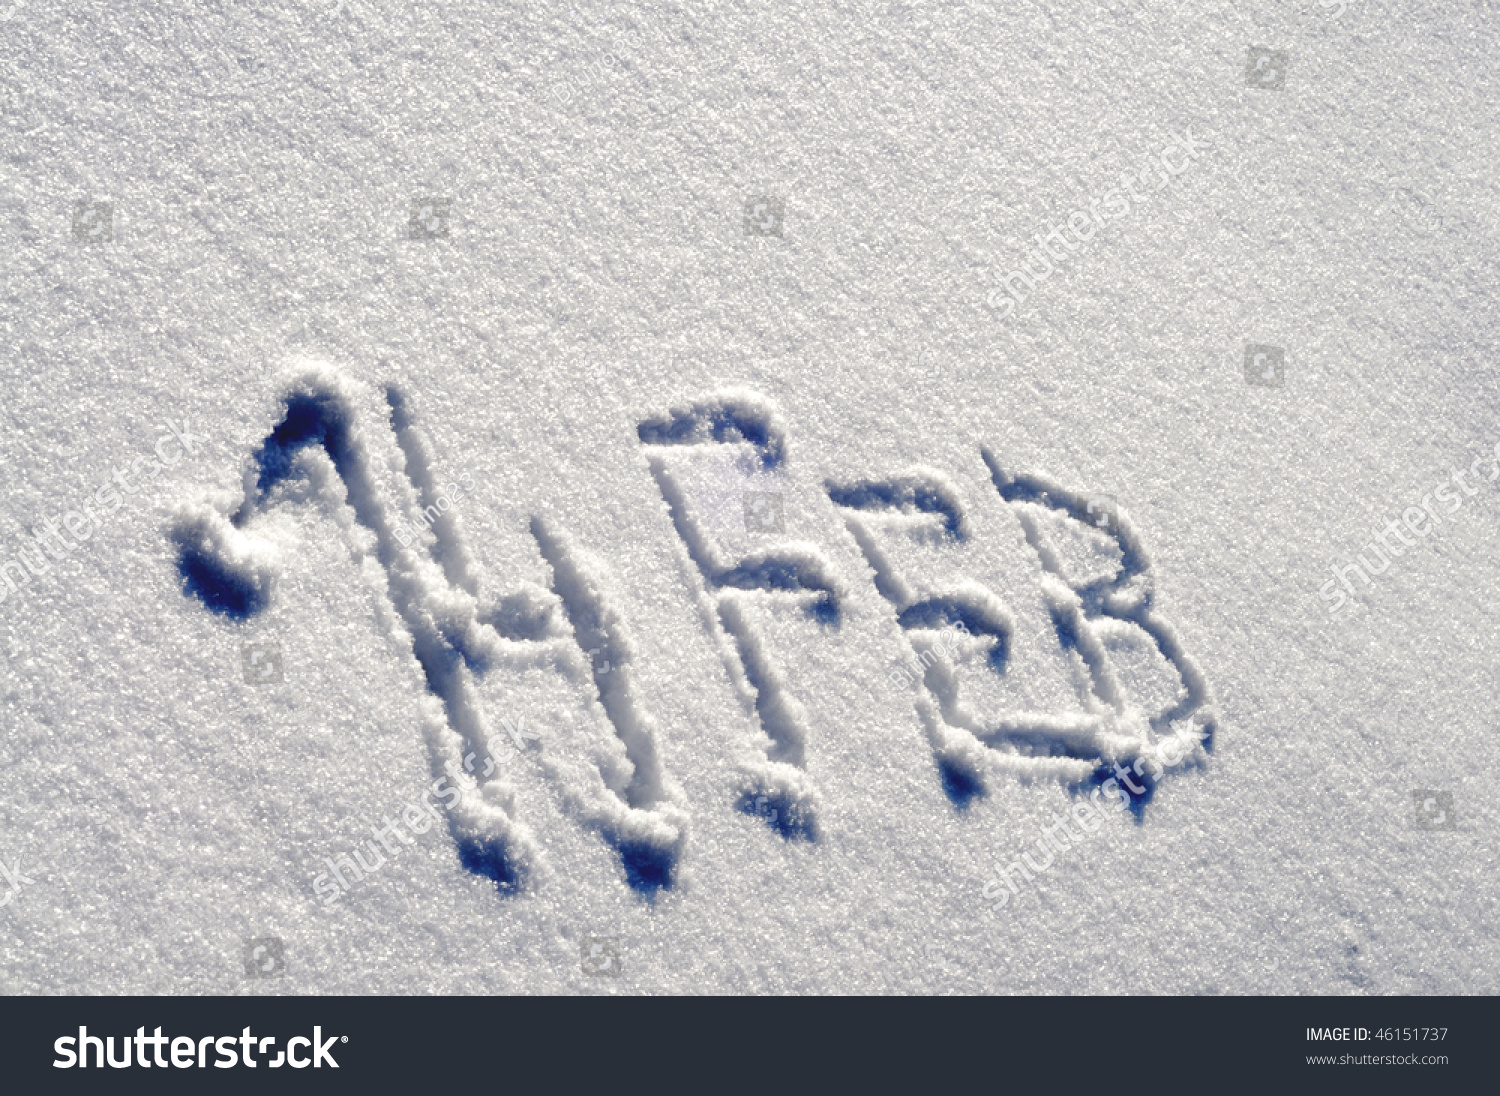 stock-photo-date-february-drawn-on-the-snow-46151737.jpg